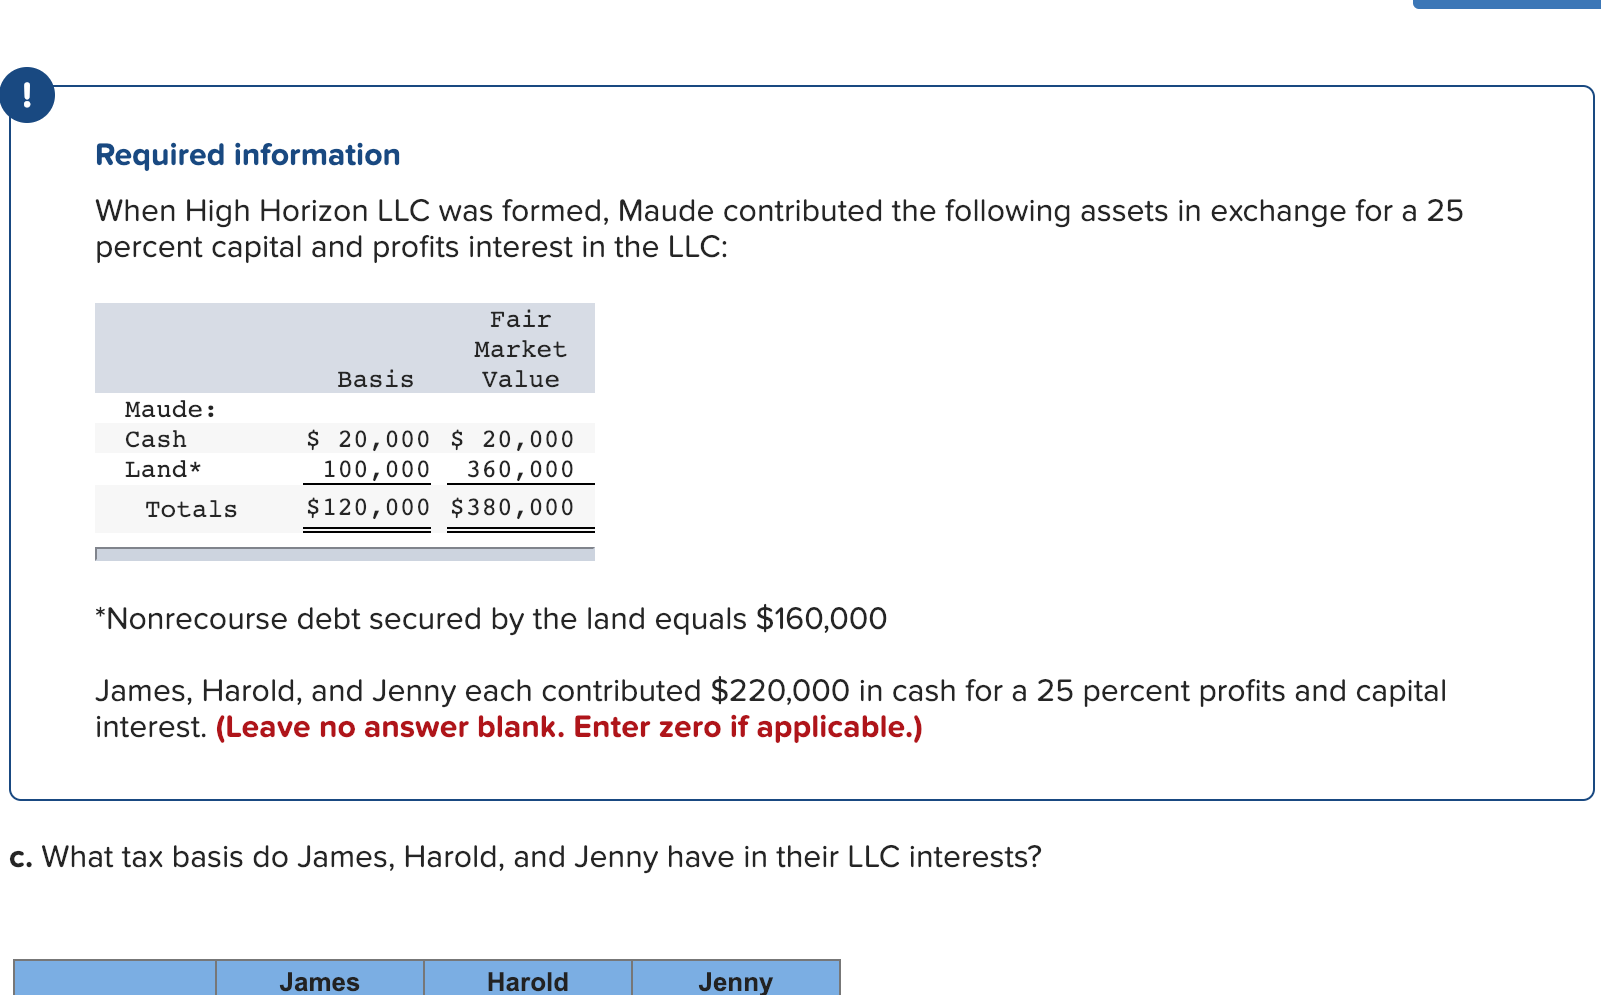 Required information When High Horizon LLC was formed, Maude contributed the following assets in exchange for a 25 percent capital and profits interest in the LLC: Fair Market Value Basis Maude: Cash Land* $ 20,000 20,000 100,000 360,000 $120,000 $380,000 Totals Nonrecourse debt secured by the land equals $160,000 James, Harold, and Jenny each contributed $220,000 in cash for a 25 percent profits and capital interest. (Leave no answer blank. Enter zero if applicable.) c. What tax basis do James, Harold, and Jenny have in their LLC interests? James Harold Jenny